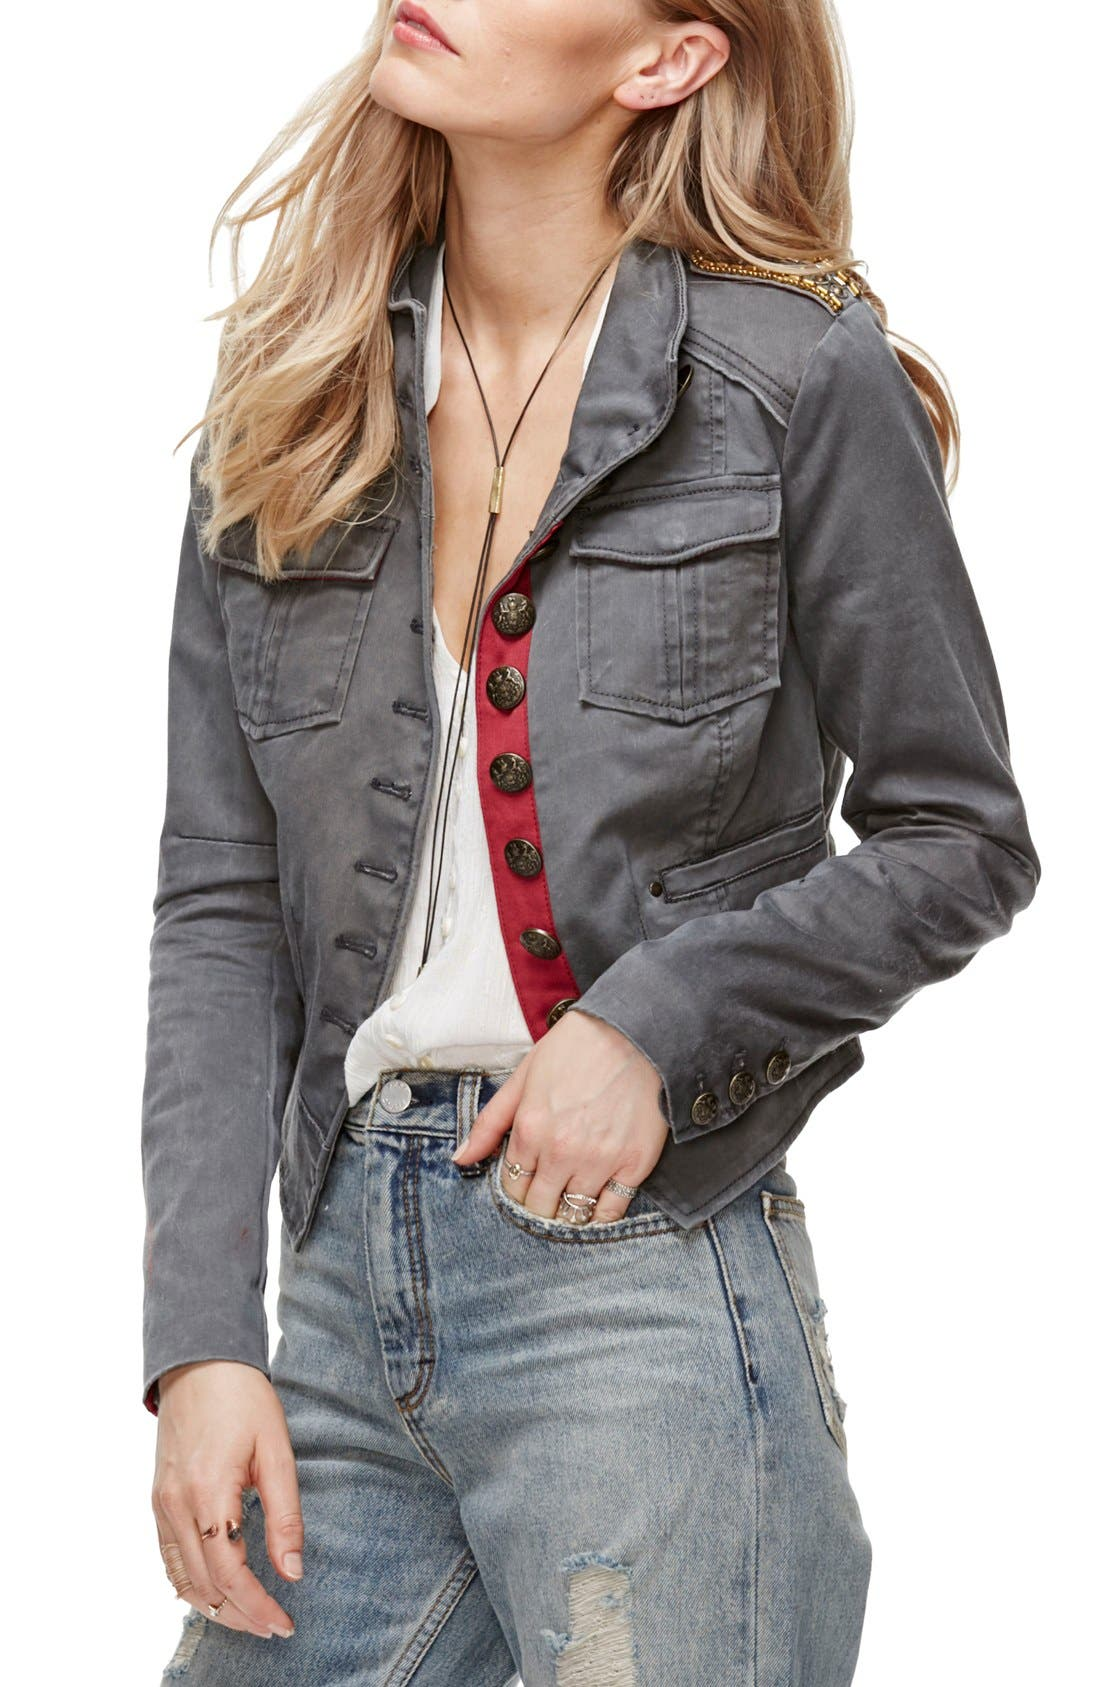 Main Image - Free People Shrunken Officer Jacket